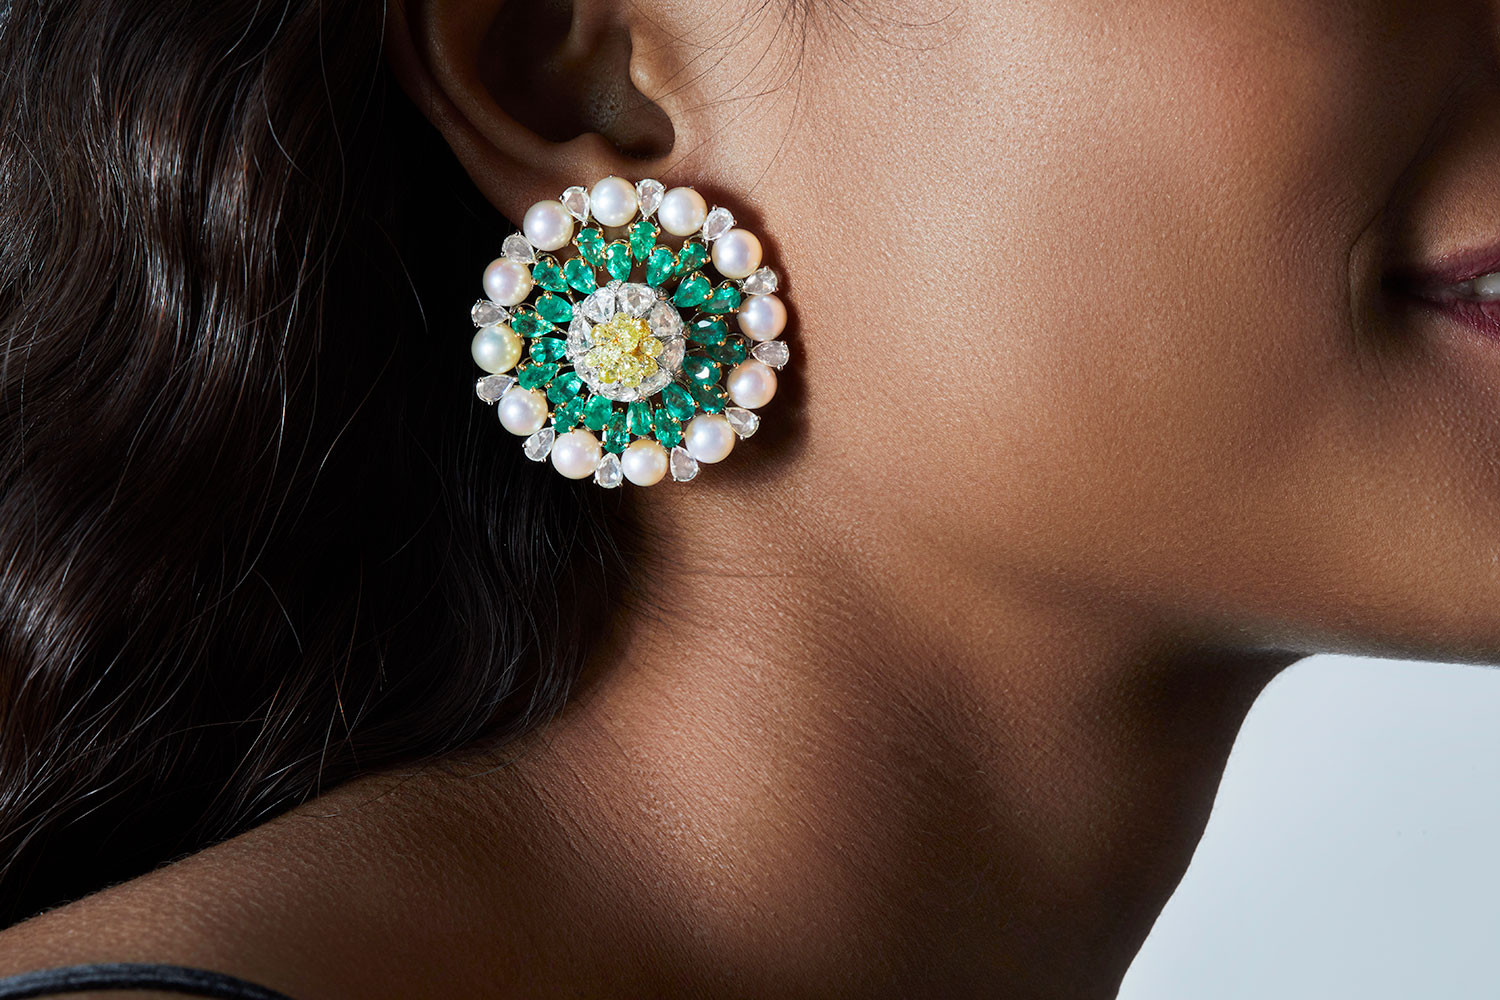 Earrings composed with rose-cut diamonds (pear-shaped), emeralds (pear-shaped) and elegant pearls as accents. The gemstones are alternatingly placed at various levels, creating a three-dimensional form that reflects brilliance and our signature artistry.  Featuring a bud-like lotus motif.